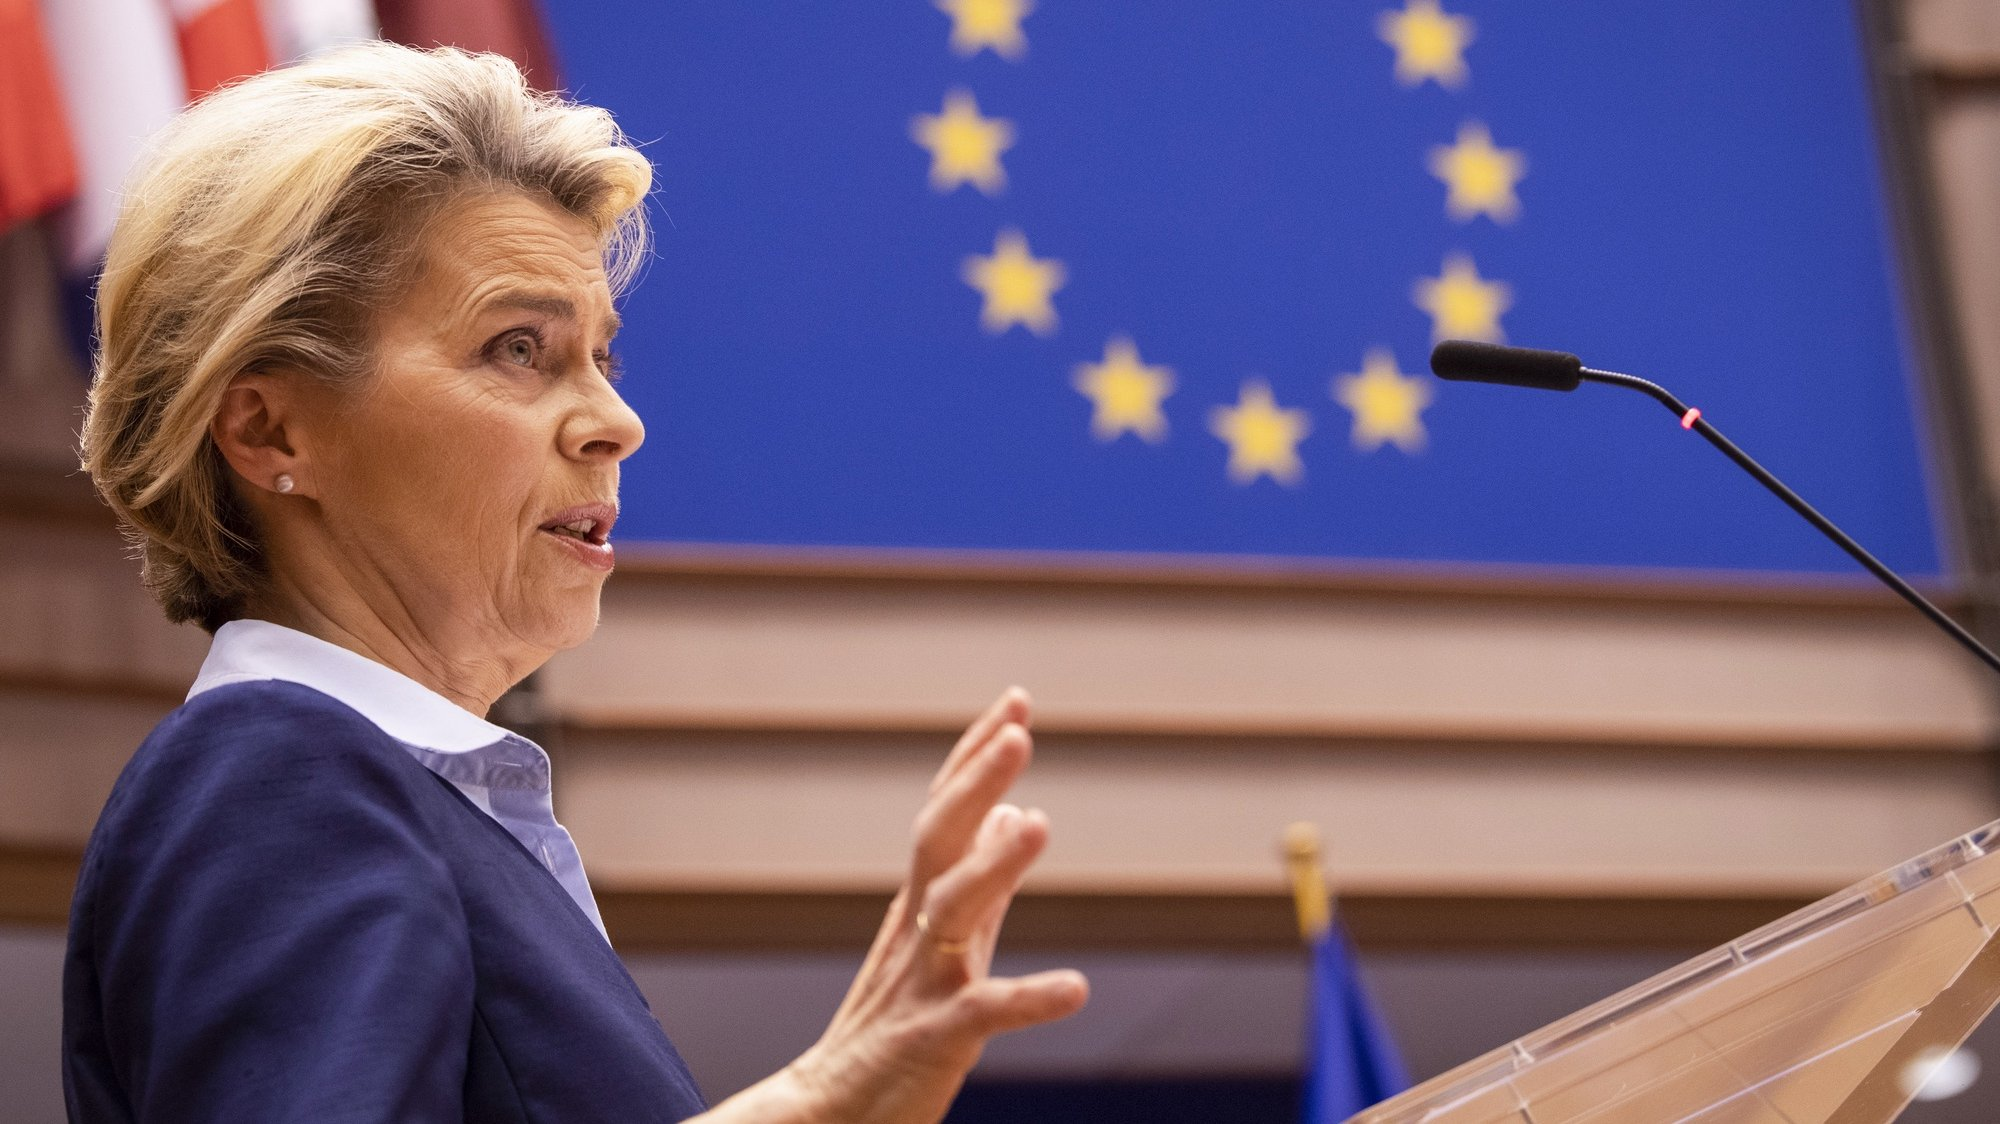 epa08886830 President of Commission Ursula von der Leyen delivers a speech, on the conclusions of Rule of Law Conditionality and Own Resources, at European Parliament, in Brussels, Belgium, 16 December 2020.  EPA/JOHN THYS / POOL